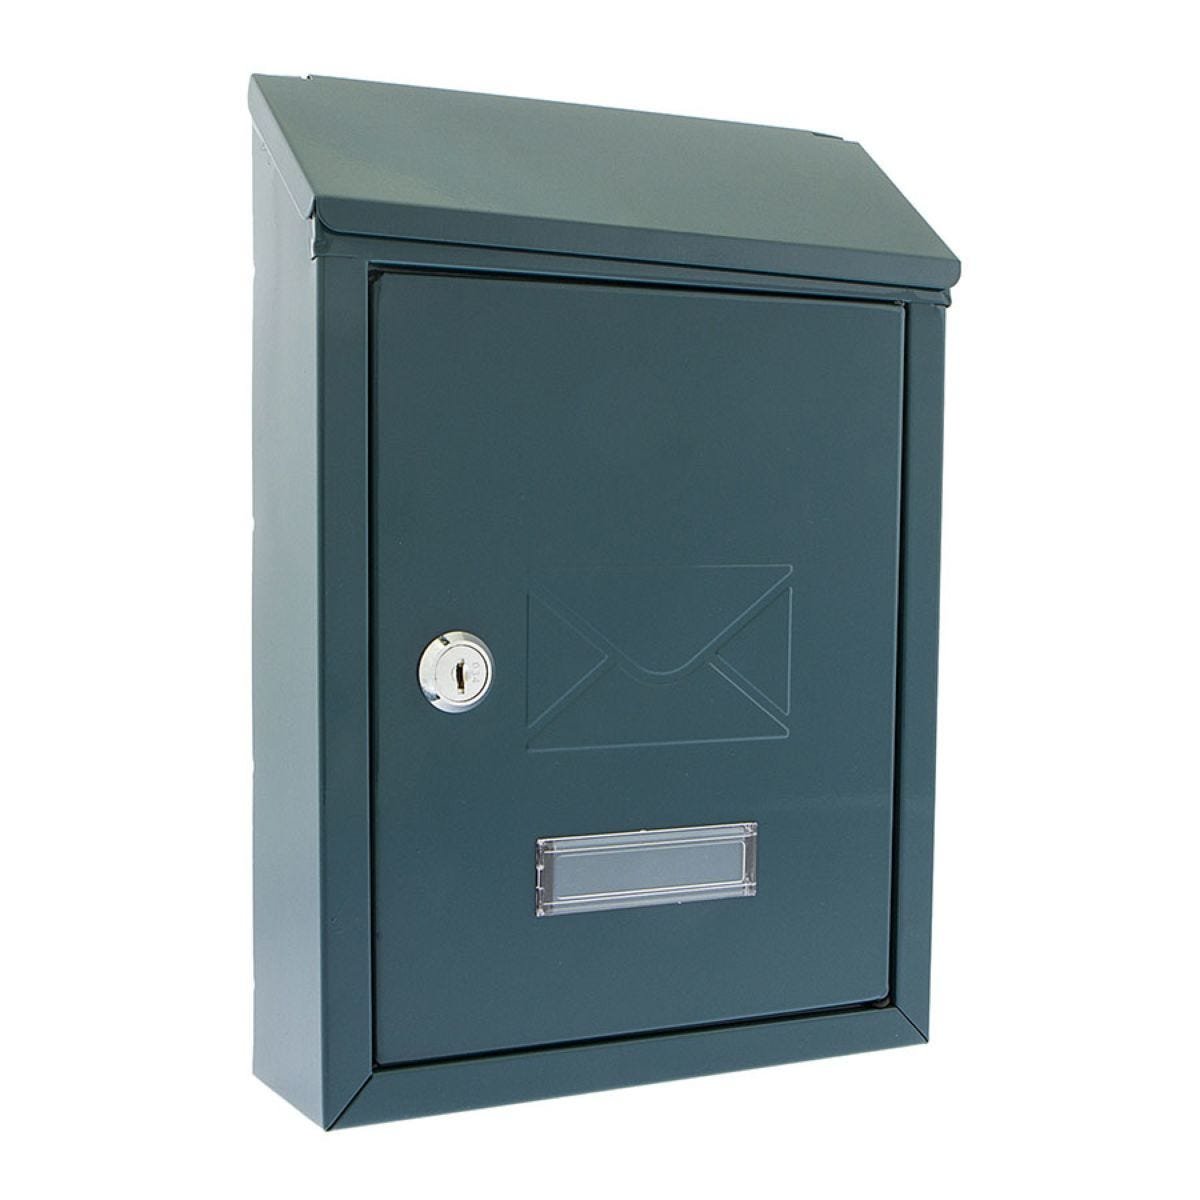 Sterling Avon Compact Post Box - Green